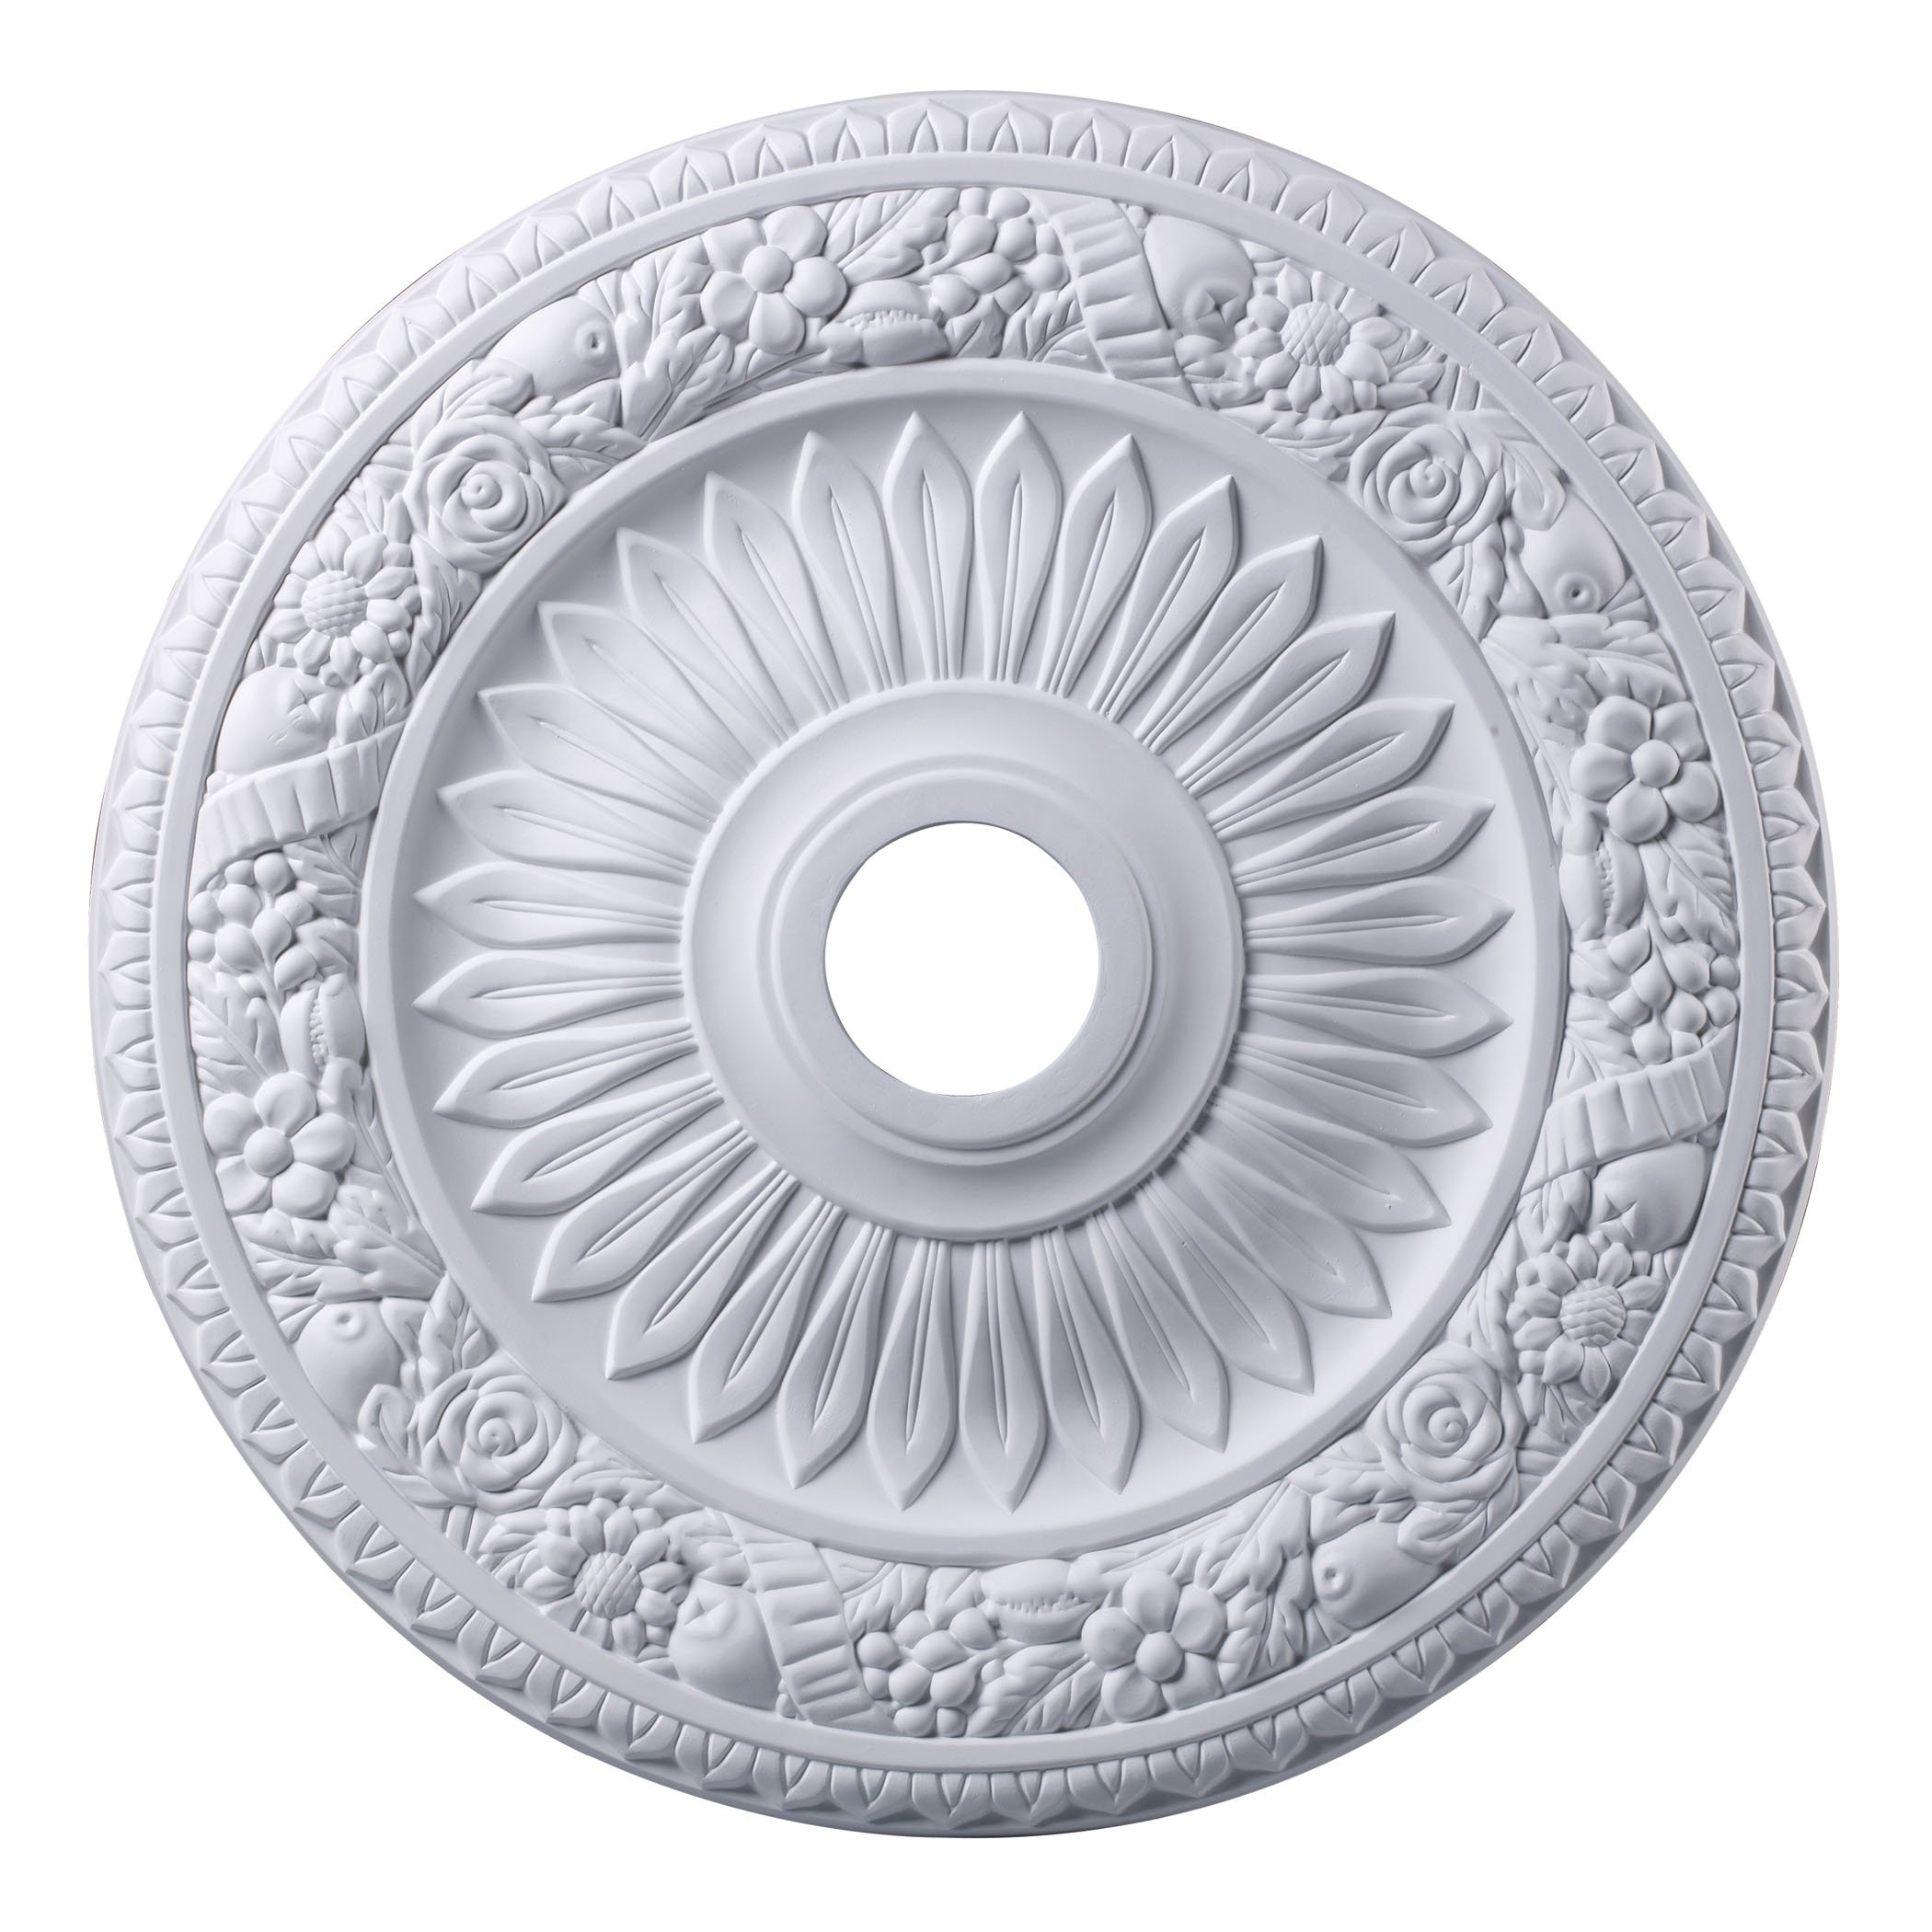 Elk M1006WH Floral Wreath Ceiling Medallion, 24-Inch, White Finish by ELK